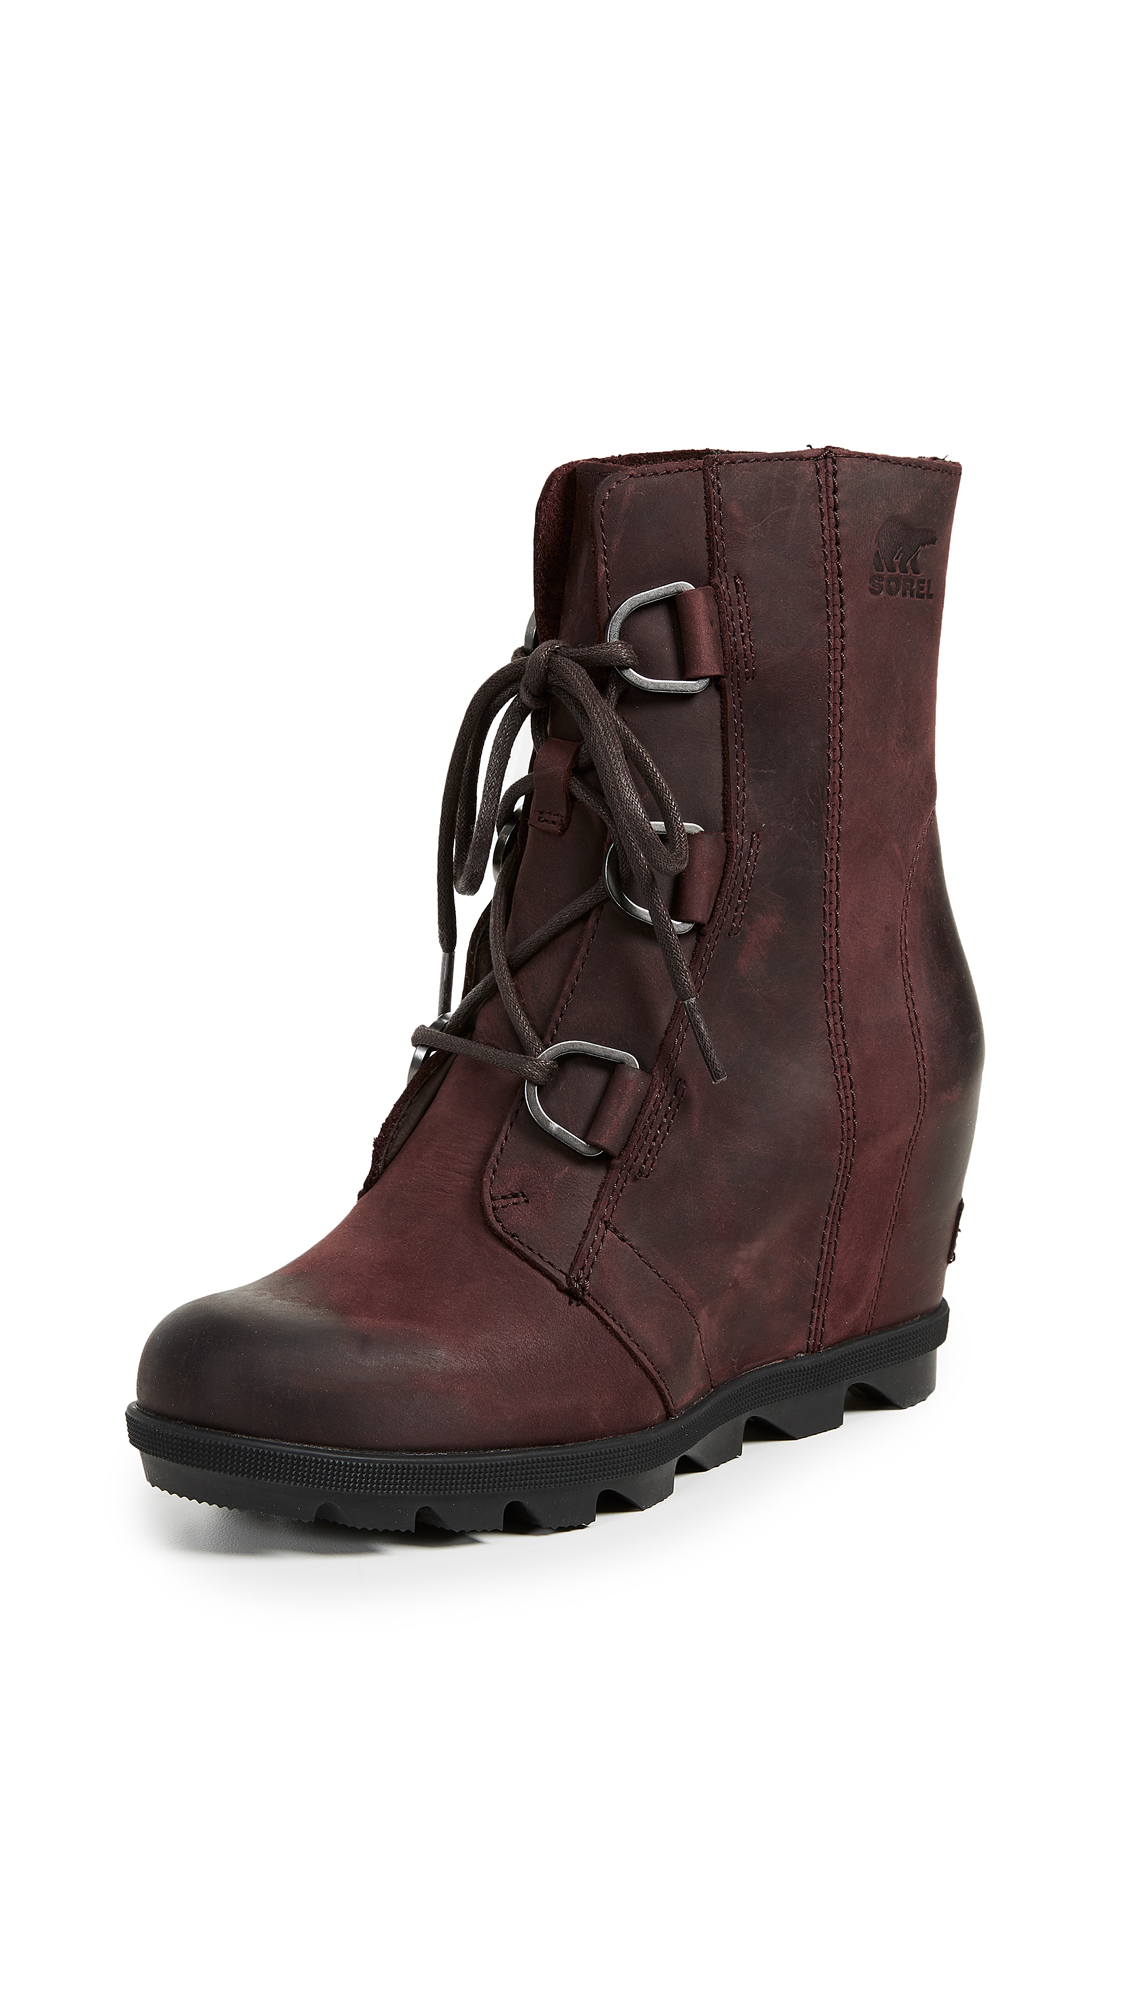 Sorel Joan of Arctic Wedge II Boots - Cattail